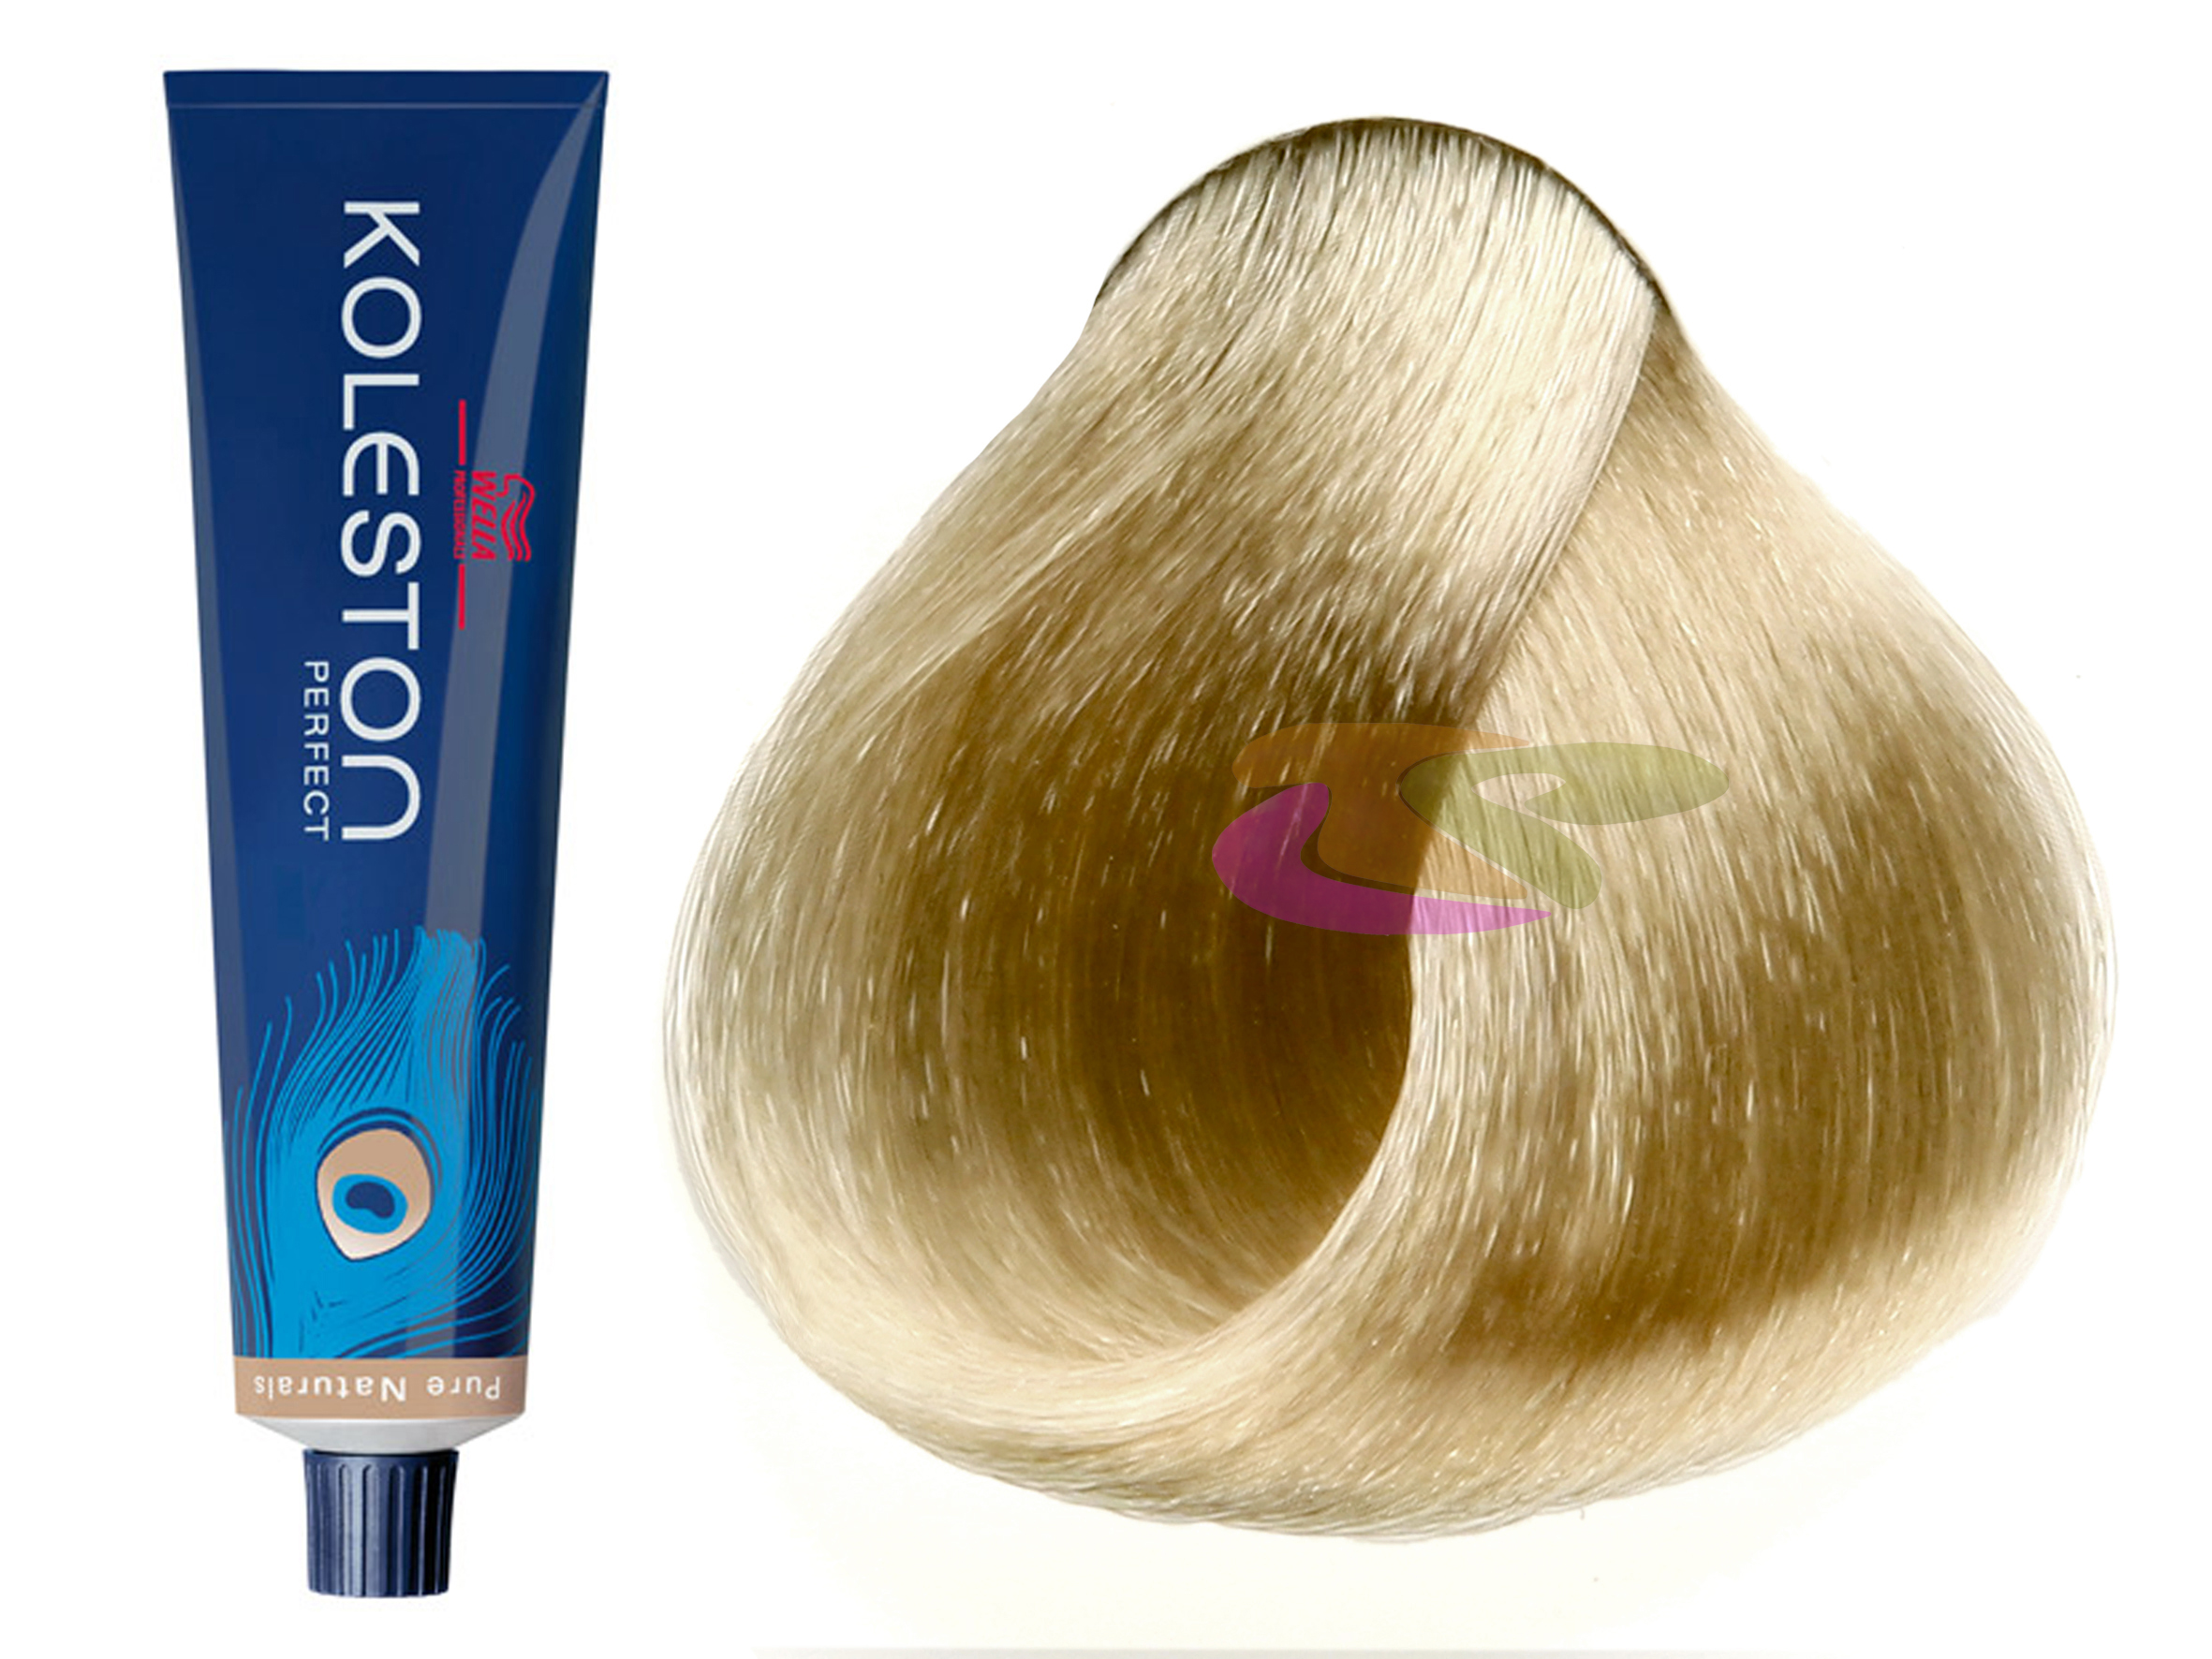 wella coloration koleston perfect pure naturals 901 60 ml oxydant offert - Coloration Wella Koleston